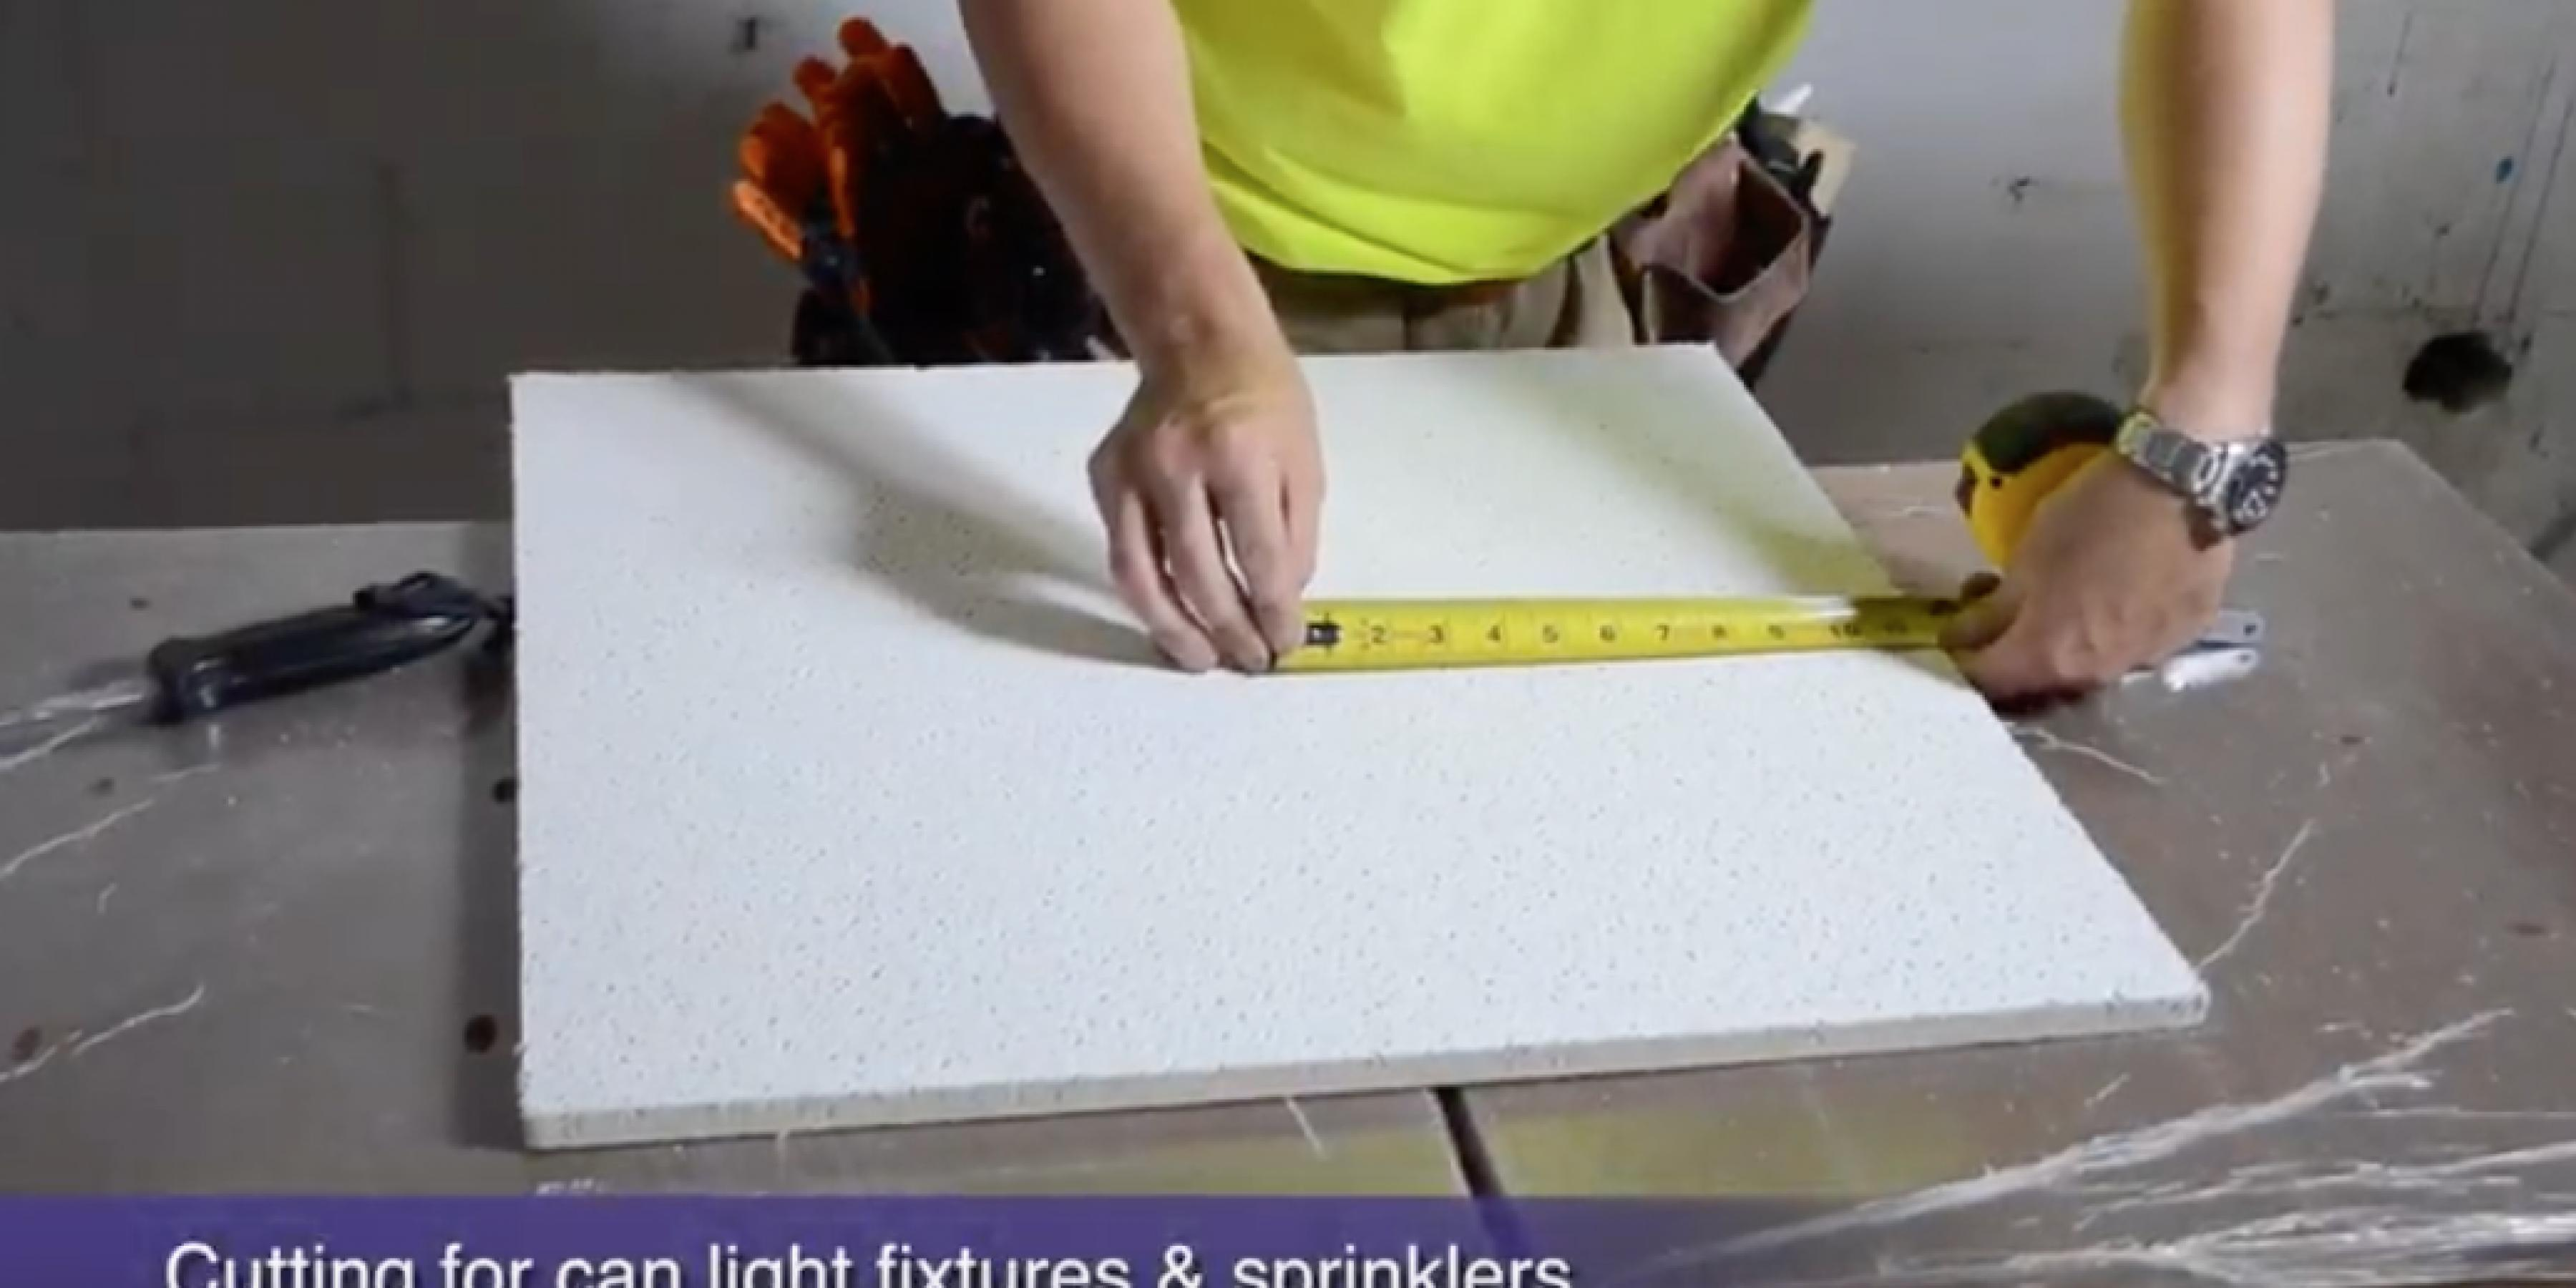 How to cut holes in ceiling tile for sprinkers and can fixtures